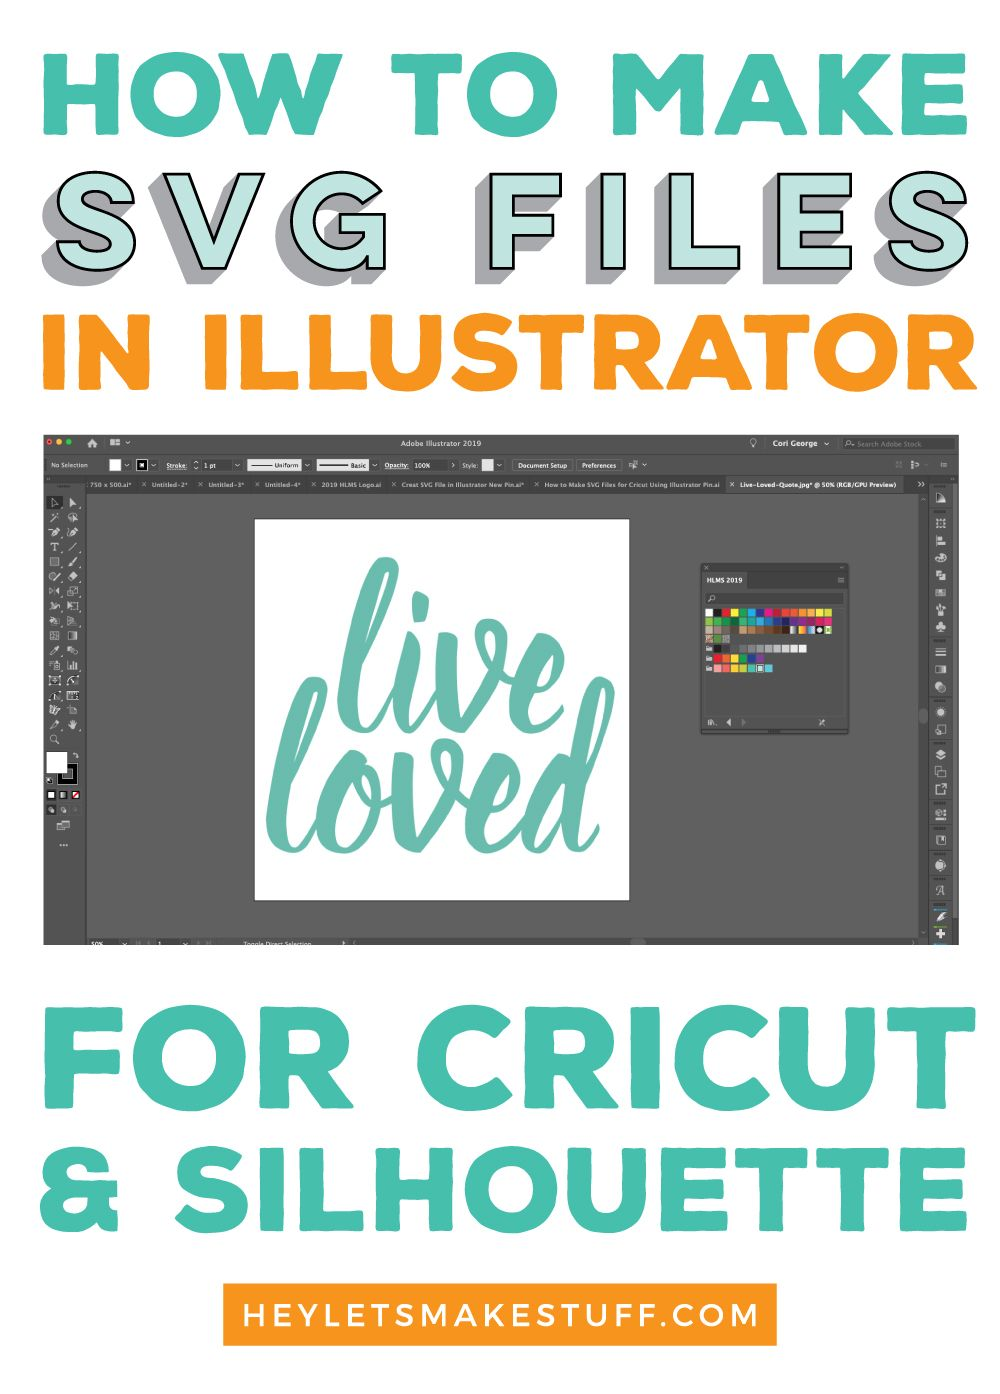 How to Make SVG Files for Cricut Using Illustrator in 2020